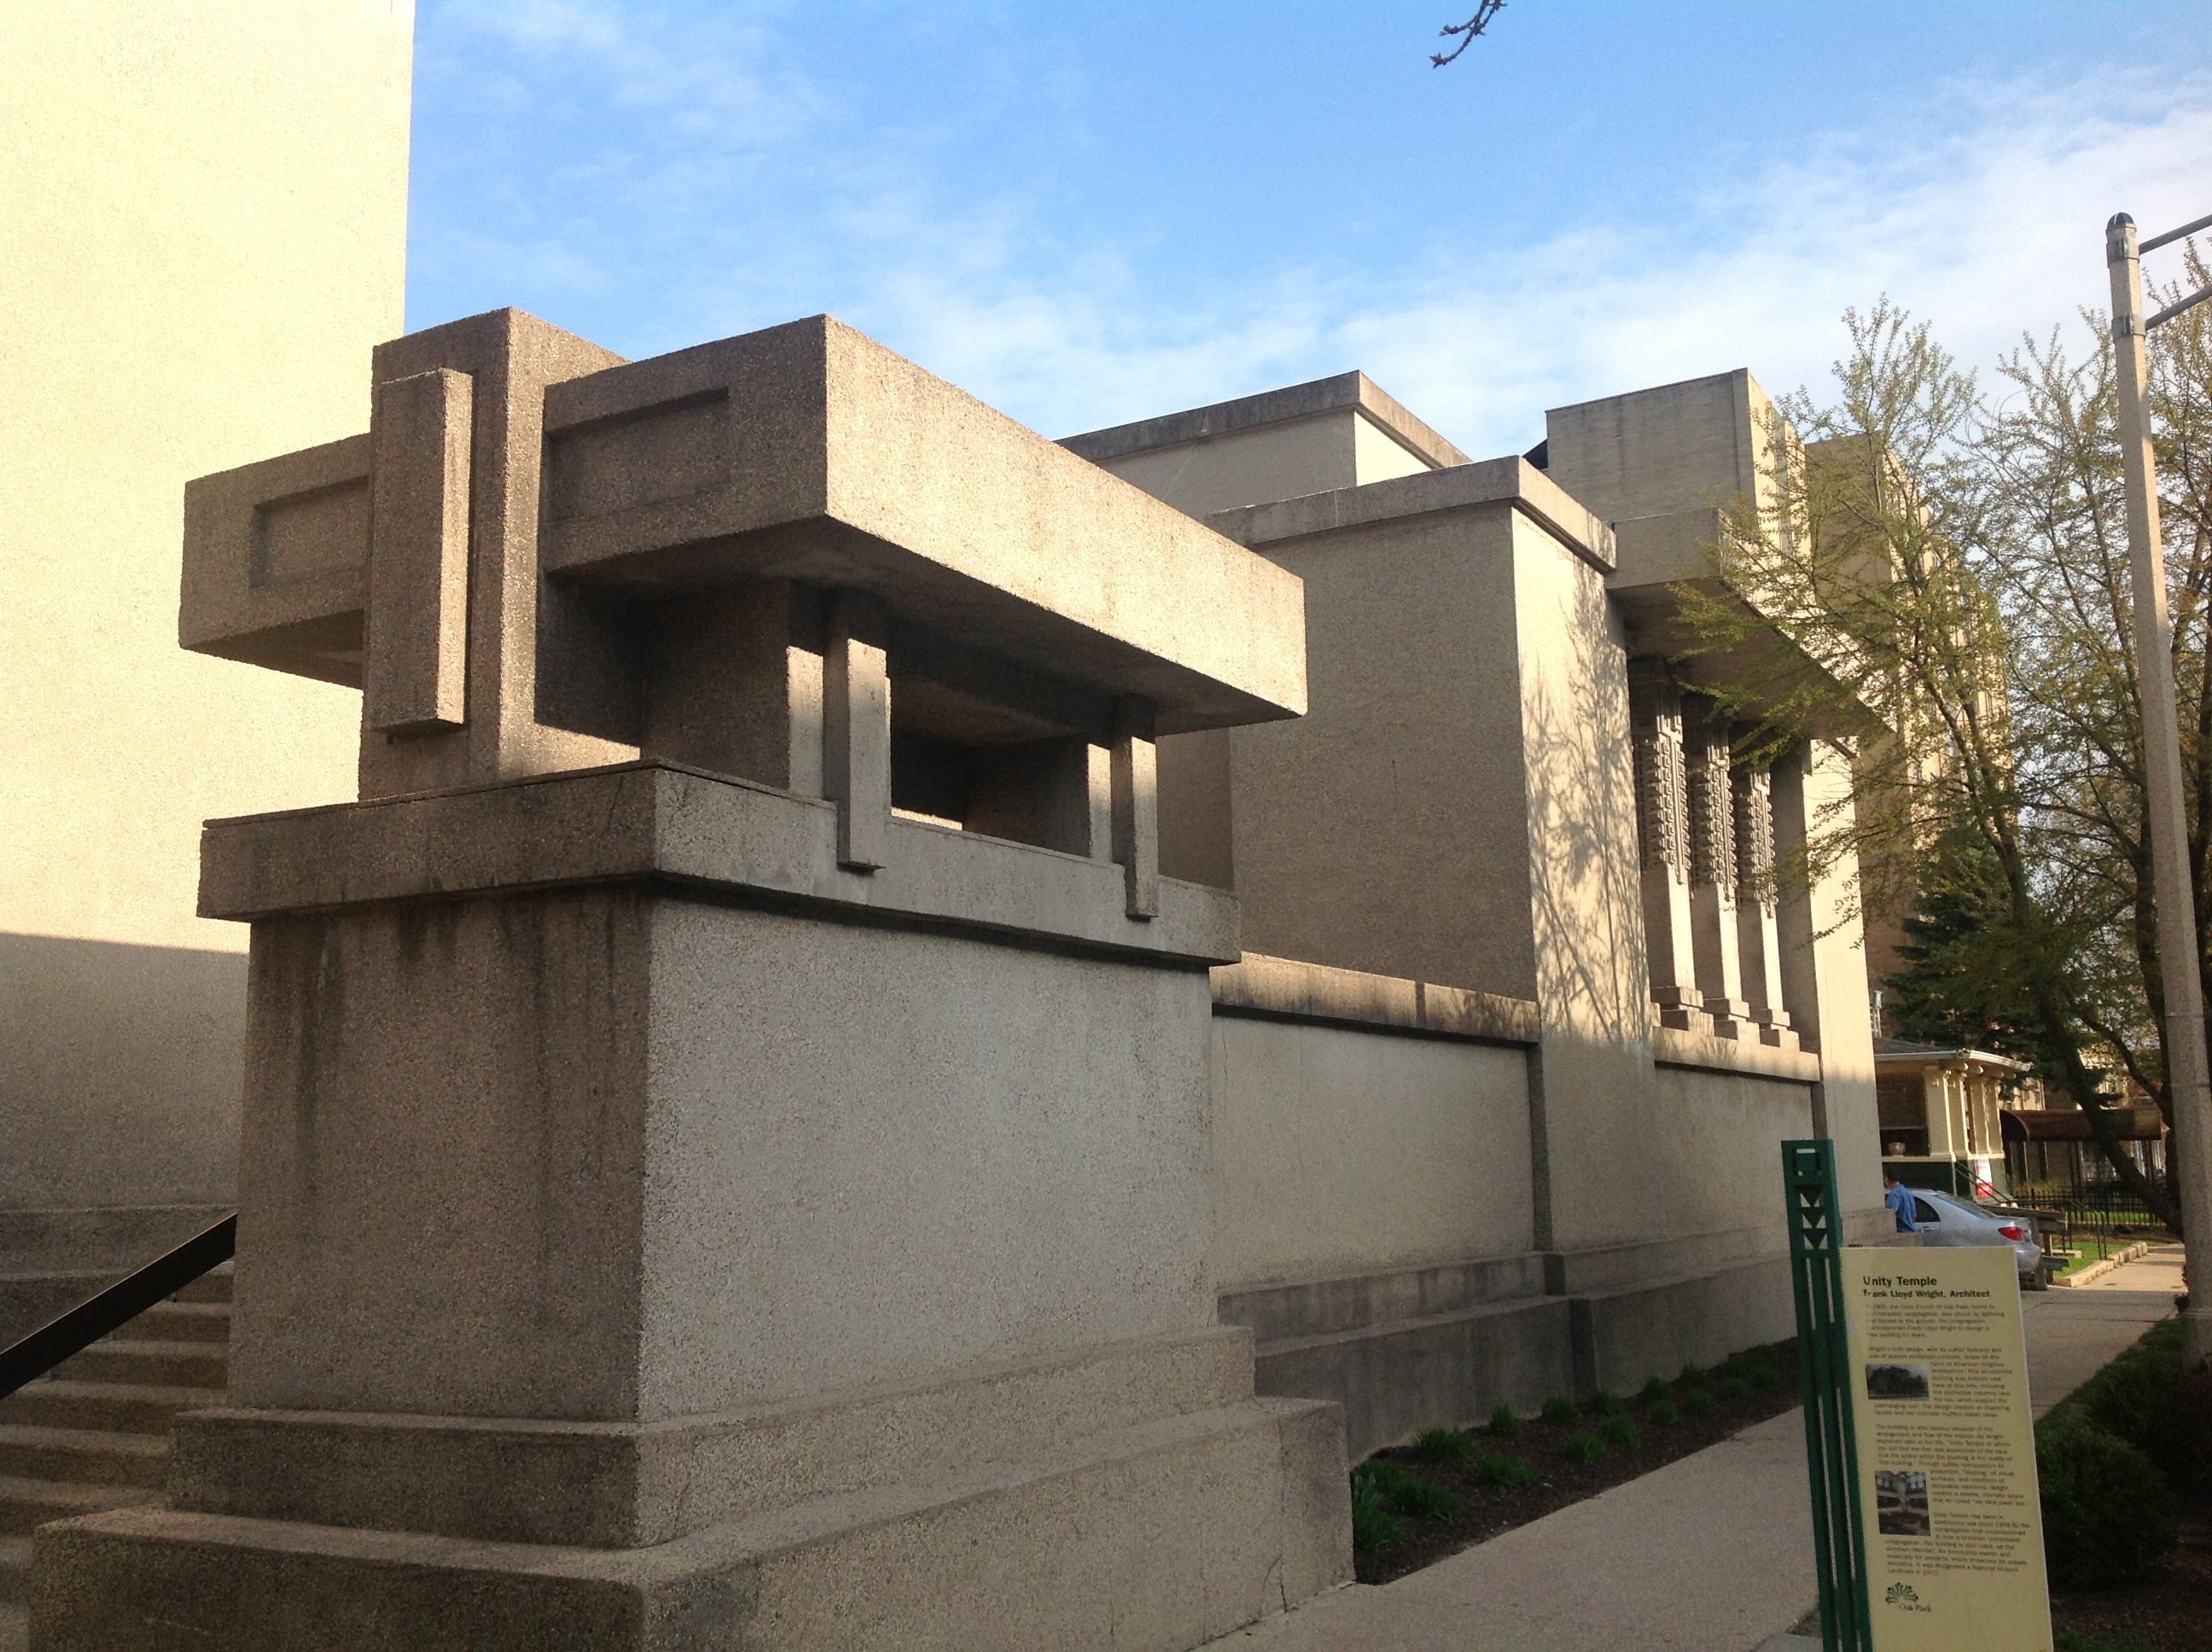 Unity Temple in Oak Park, Illinois, designed by architect Frank Lloyd Wright